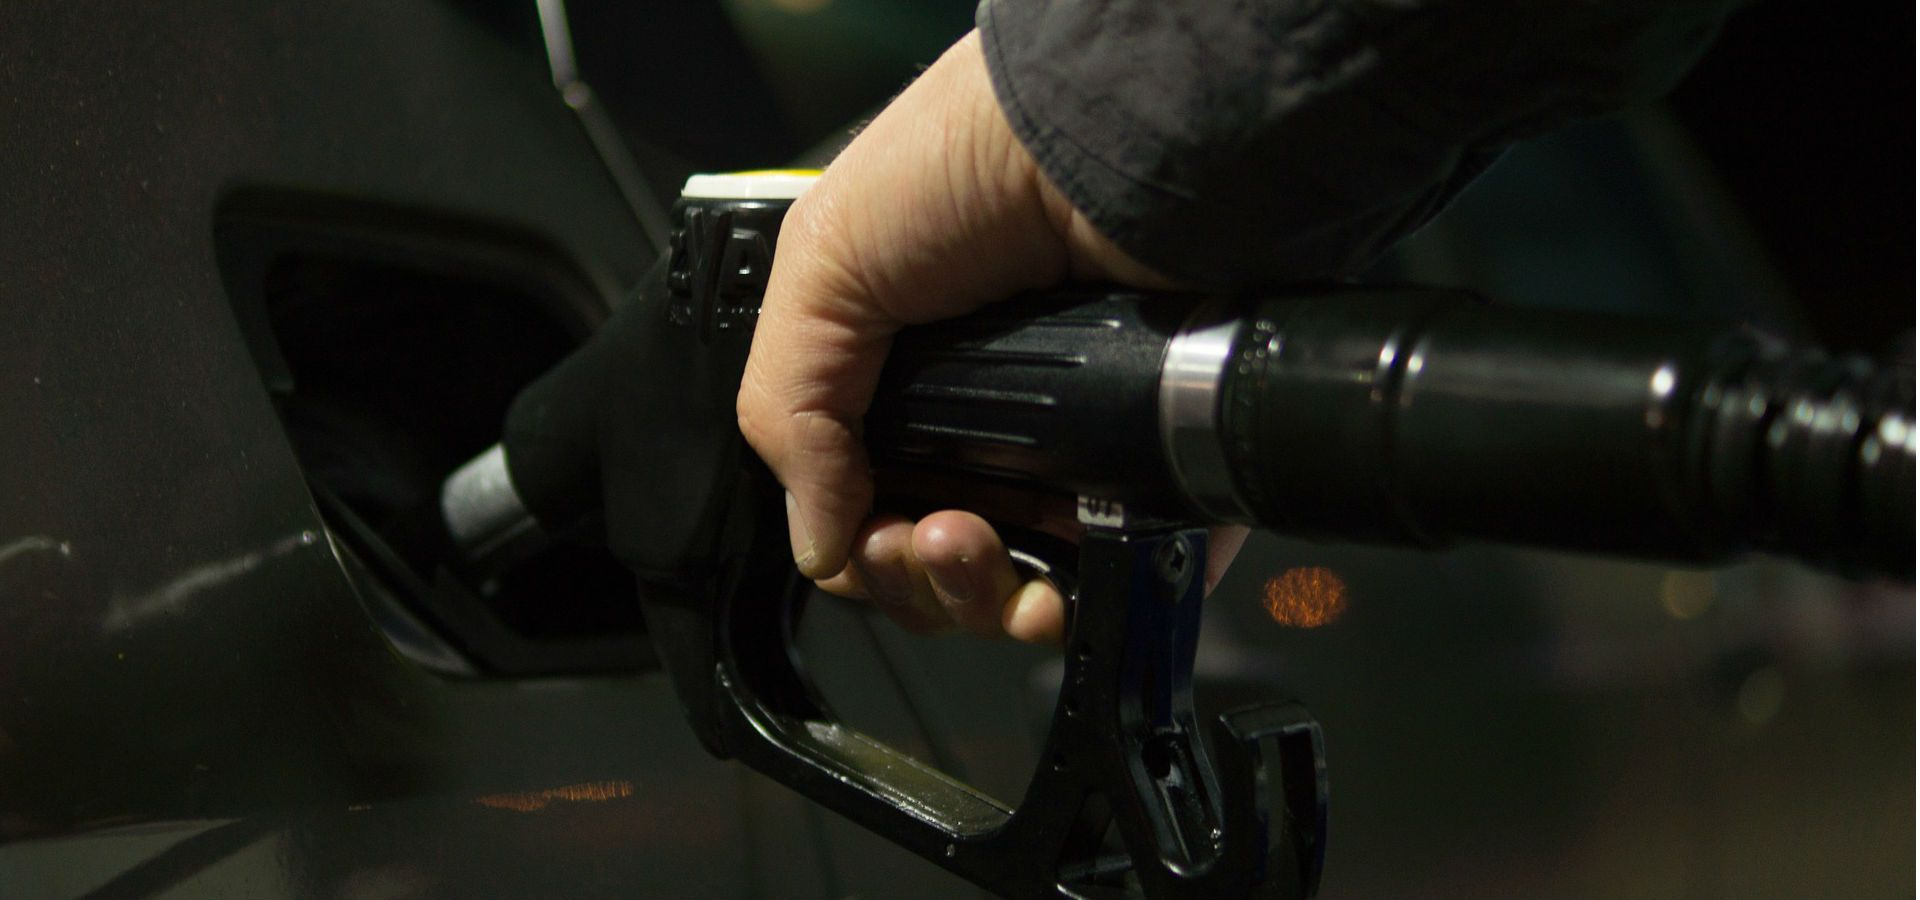 HOW TO CLEAN UP THE DIESEL FUELING EXPERIENCE